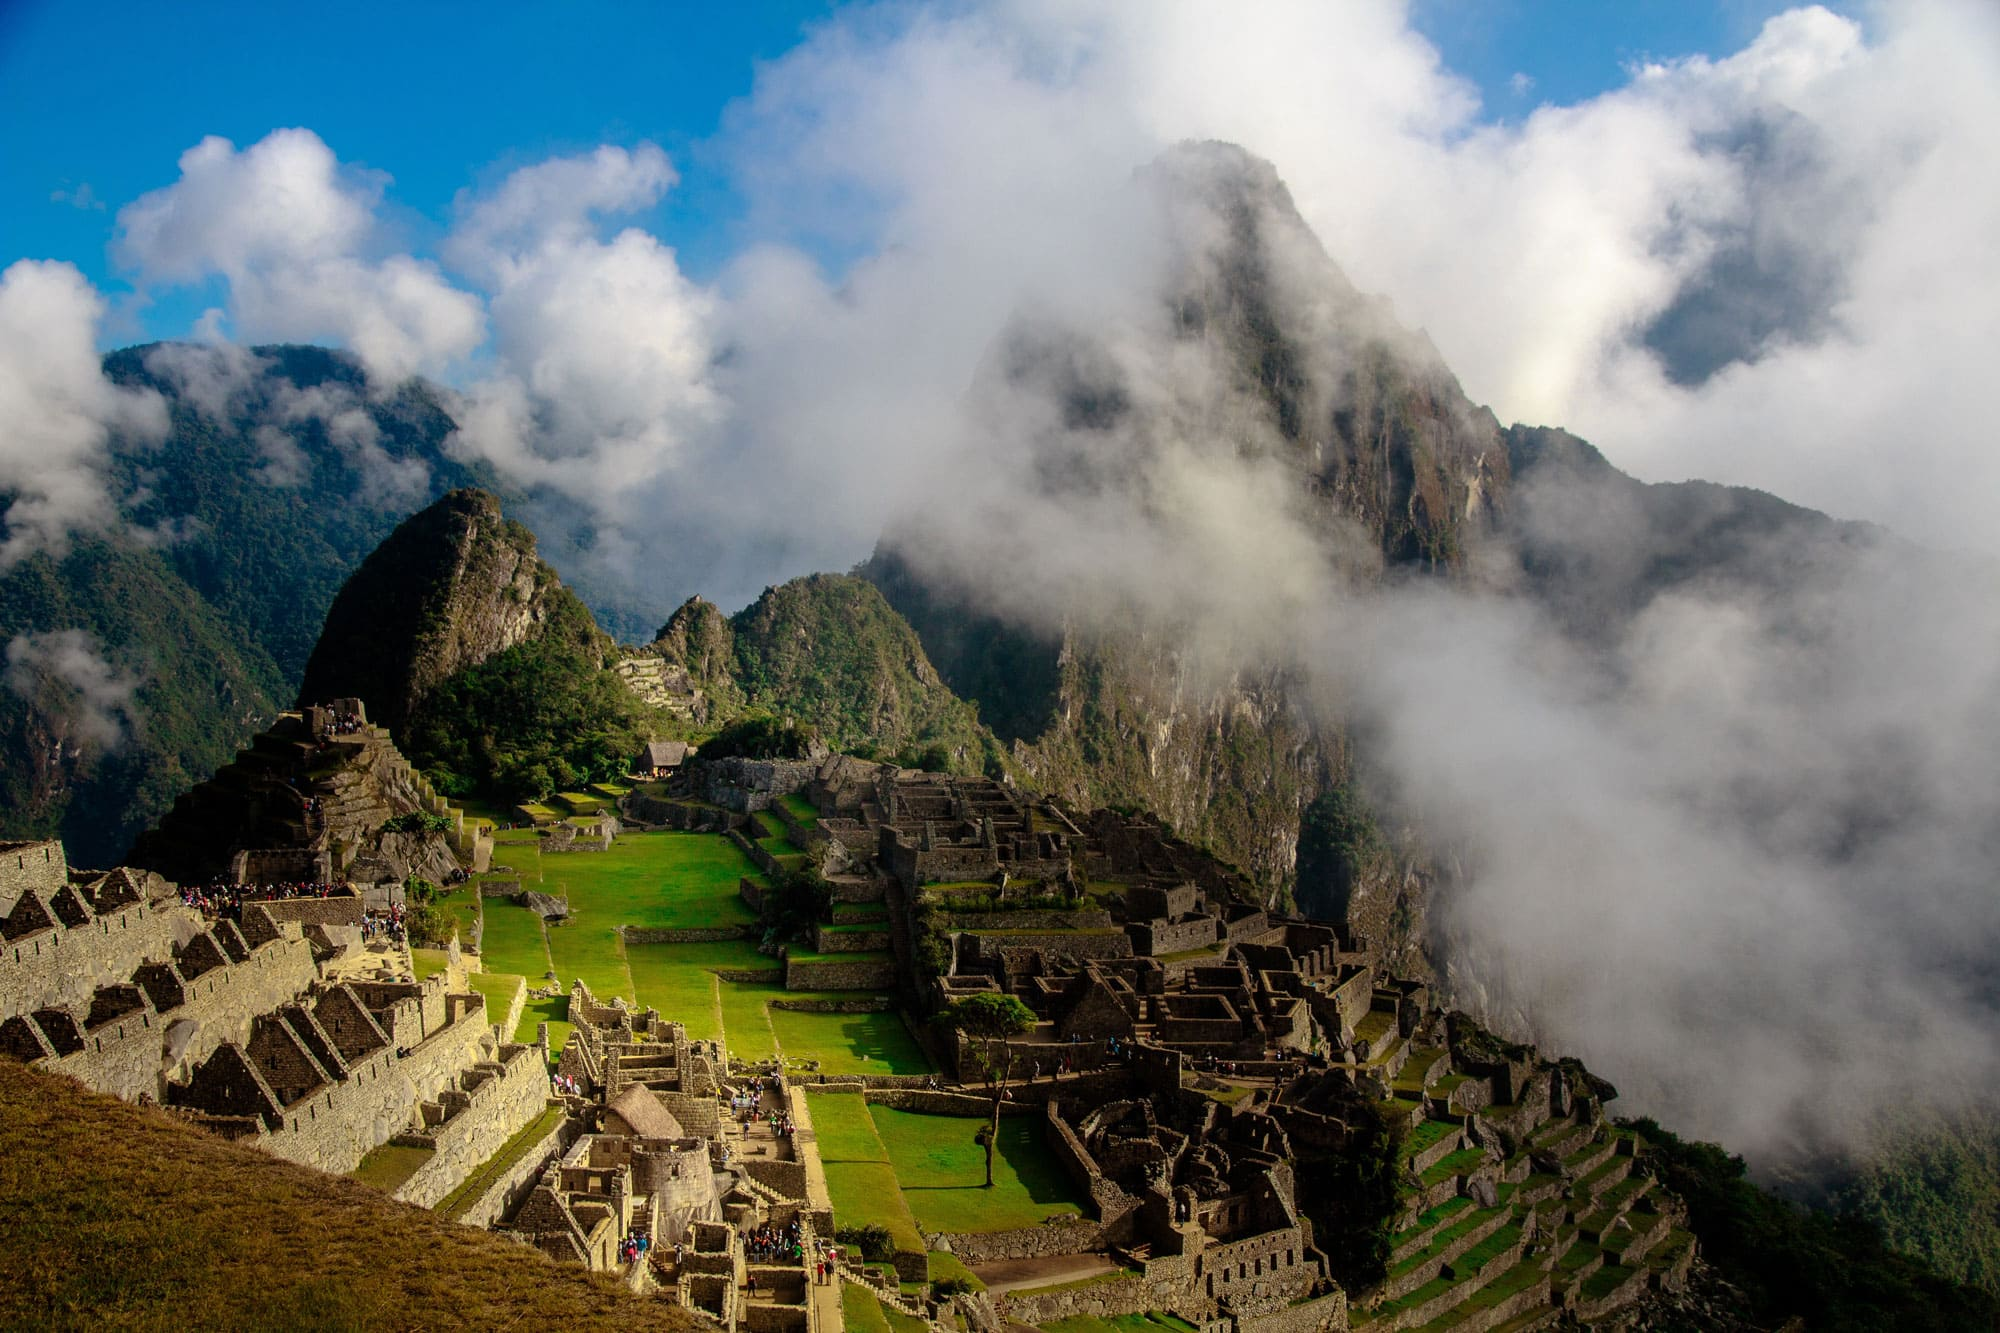 I'd Always Dreamed Of Visiting Machu Picchu. Mysterious, Breathtaking And Inconceivably Built City Will Inspire Awe In Any Person Lucky Enough To Visit.